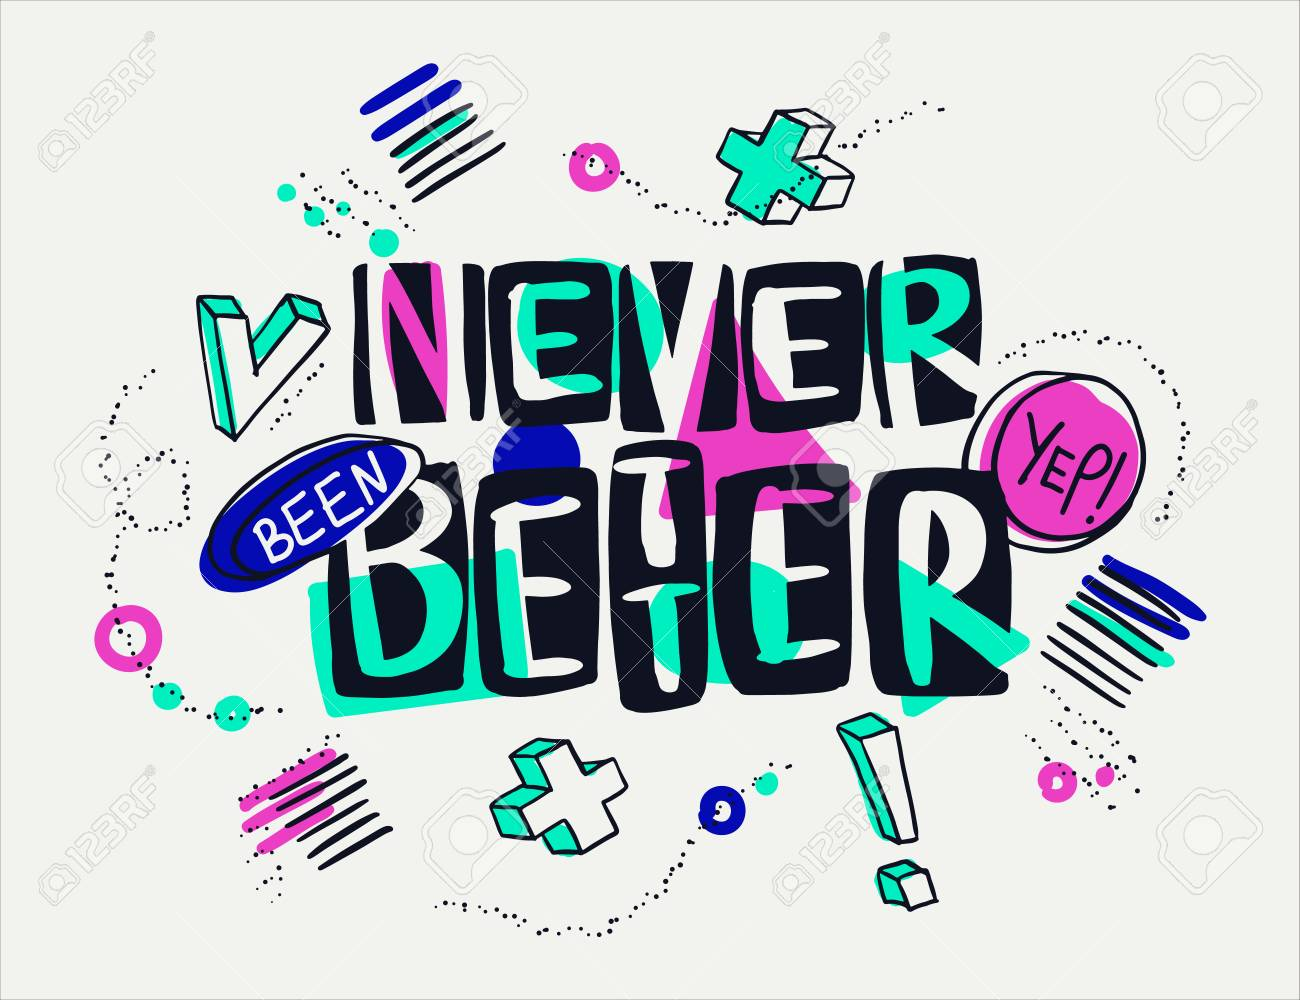 Never been better words in artistic way. Hand drawn creative calligraphy and brush pen lettering, design for t-shirts, posters, greeting cards and banners. - 112041793